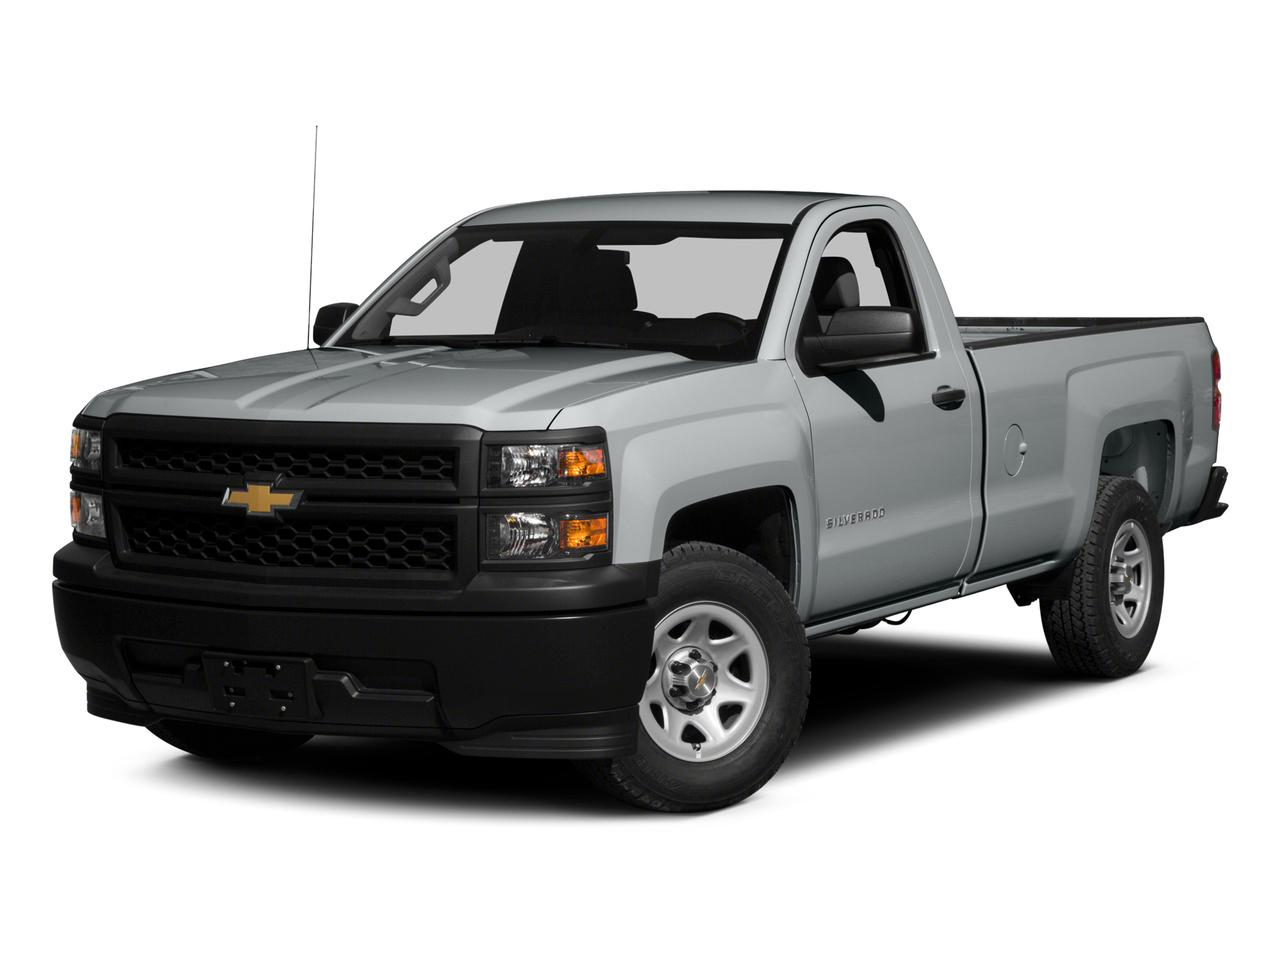 2015 Chevrolet Silverado 1500 Vehicle Photo in Merriam, KS 66202